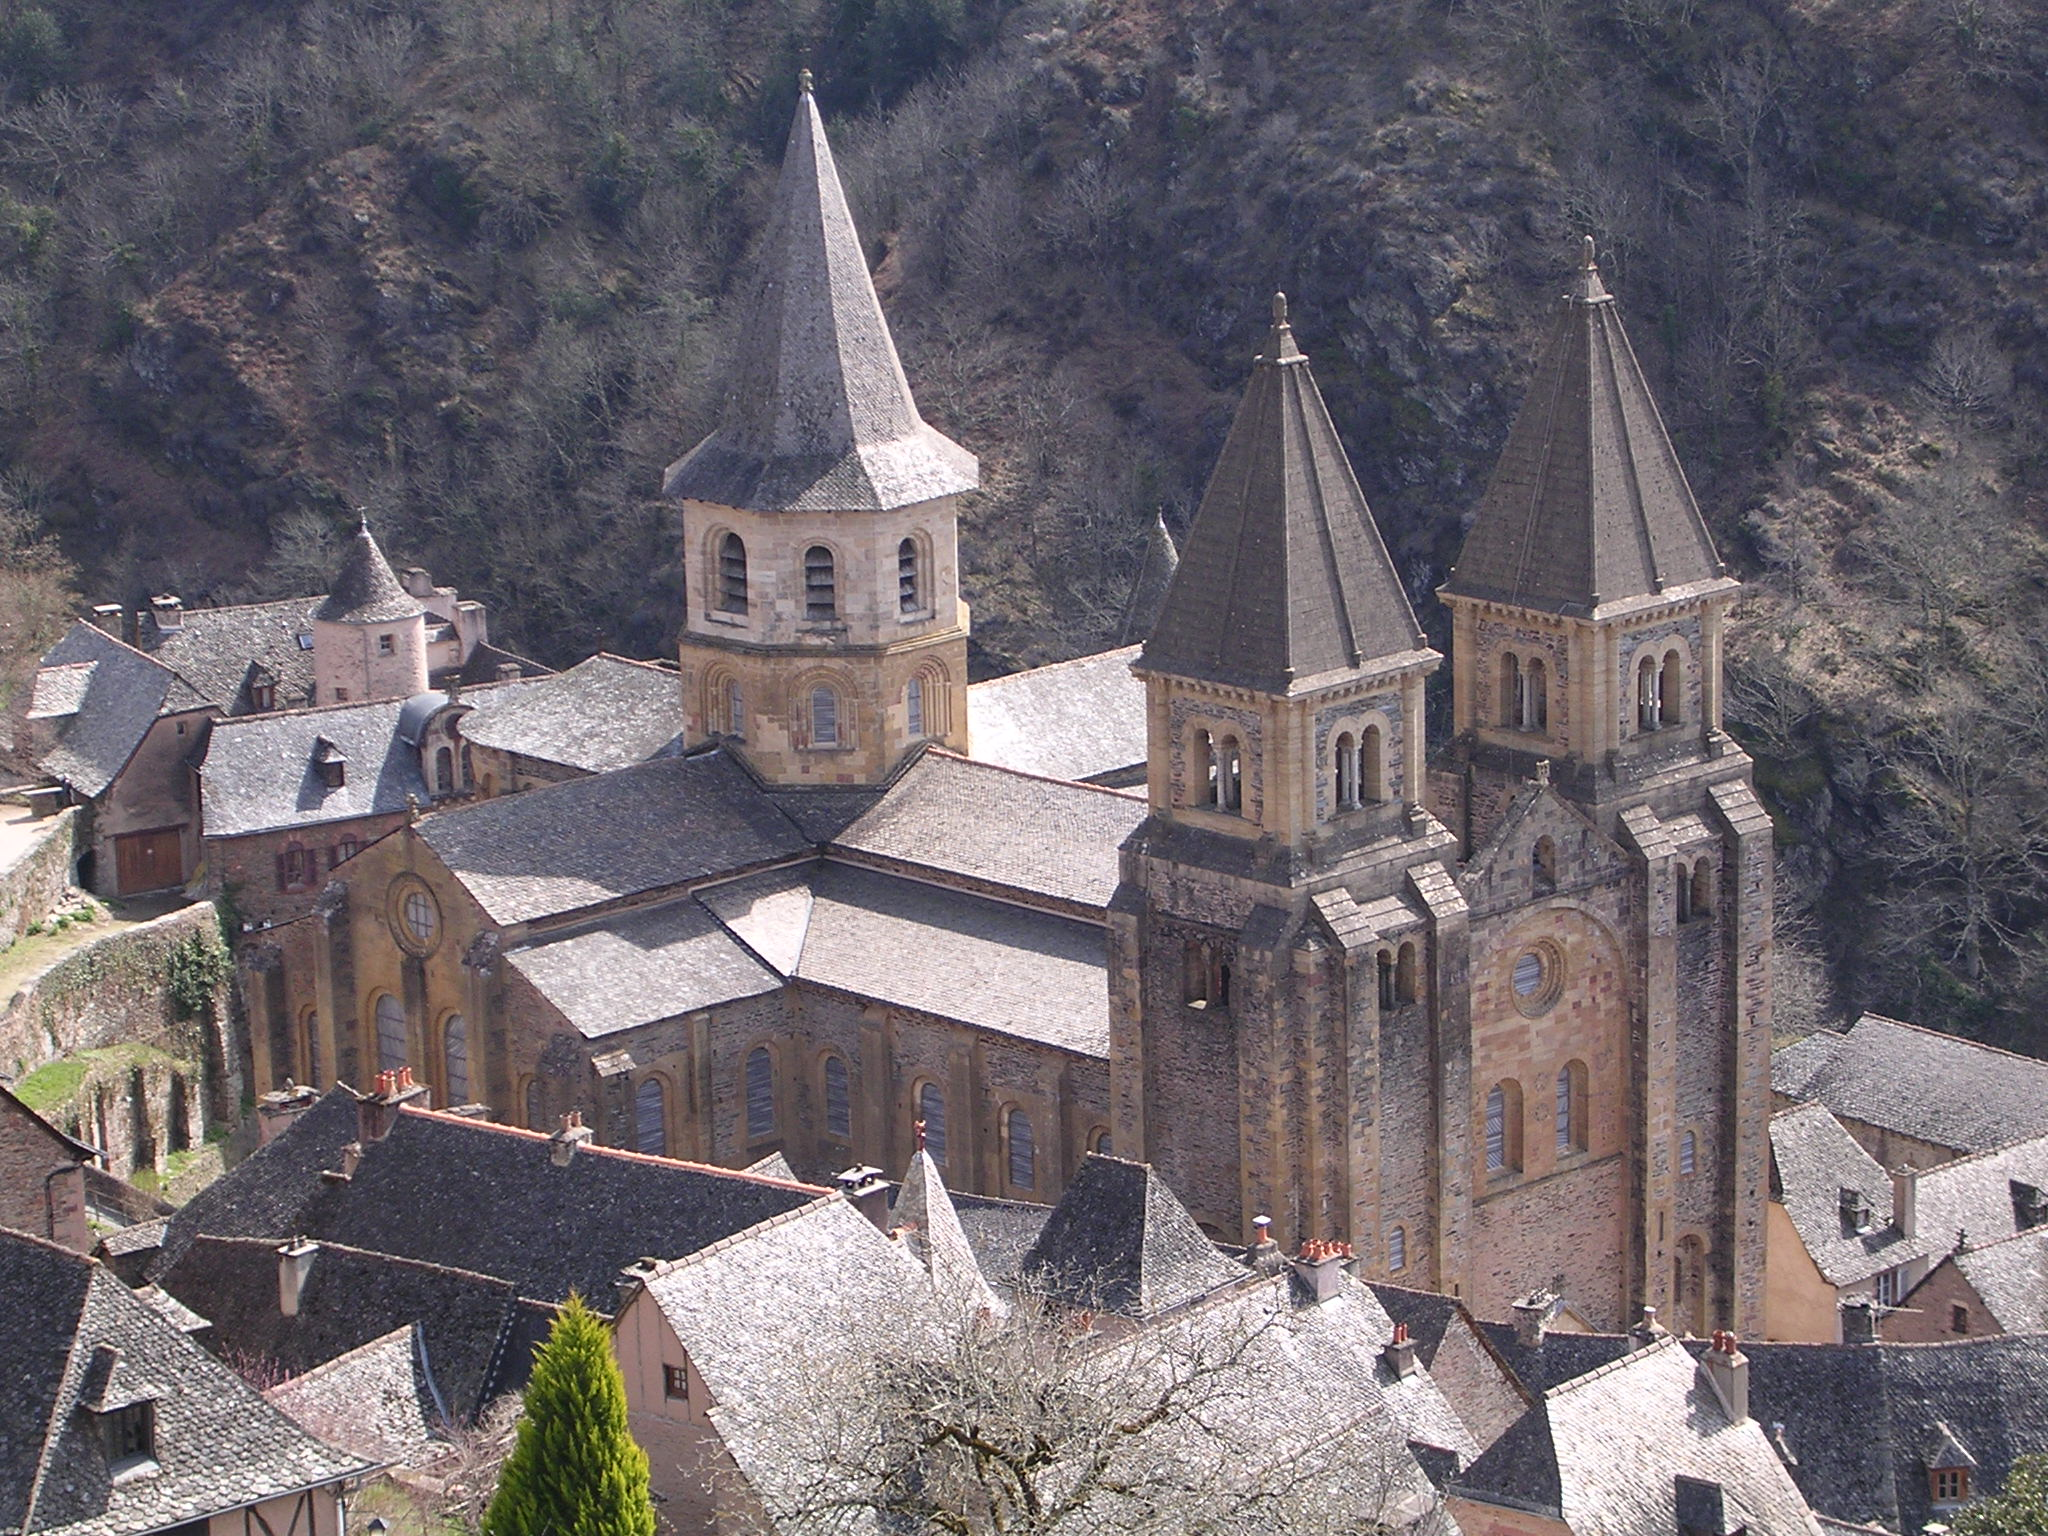 http://upload.wikimedia.org/wikipedia/commons/c/c4/Sainte-Foy_de_Conques.JPG